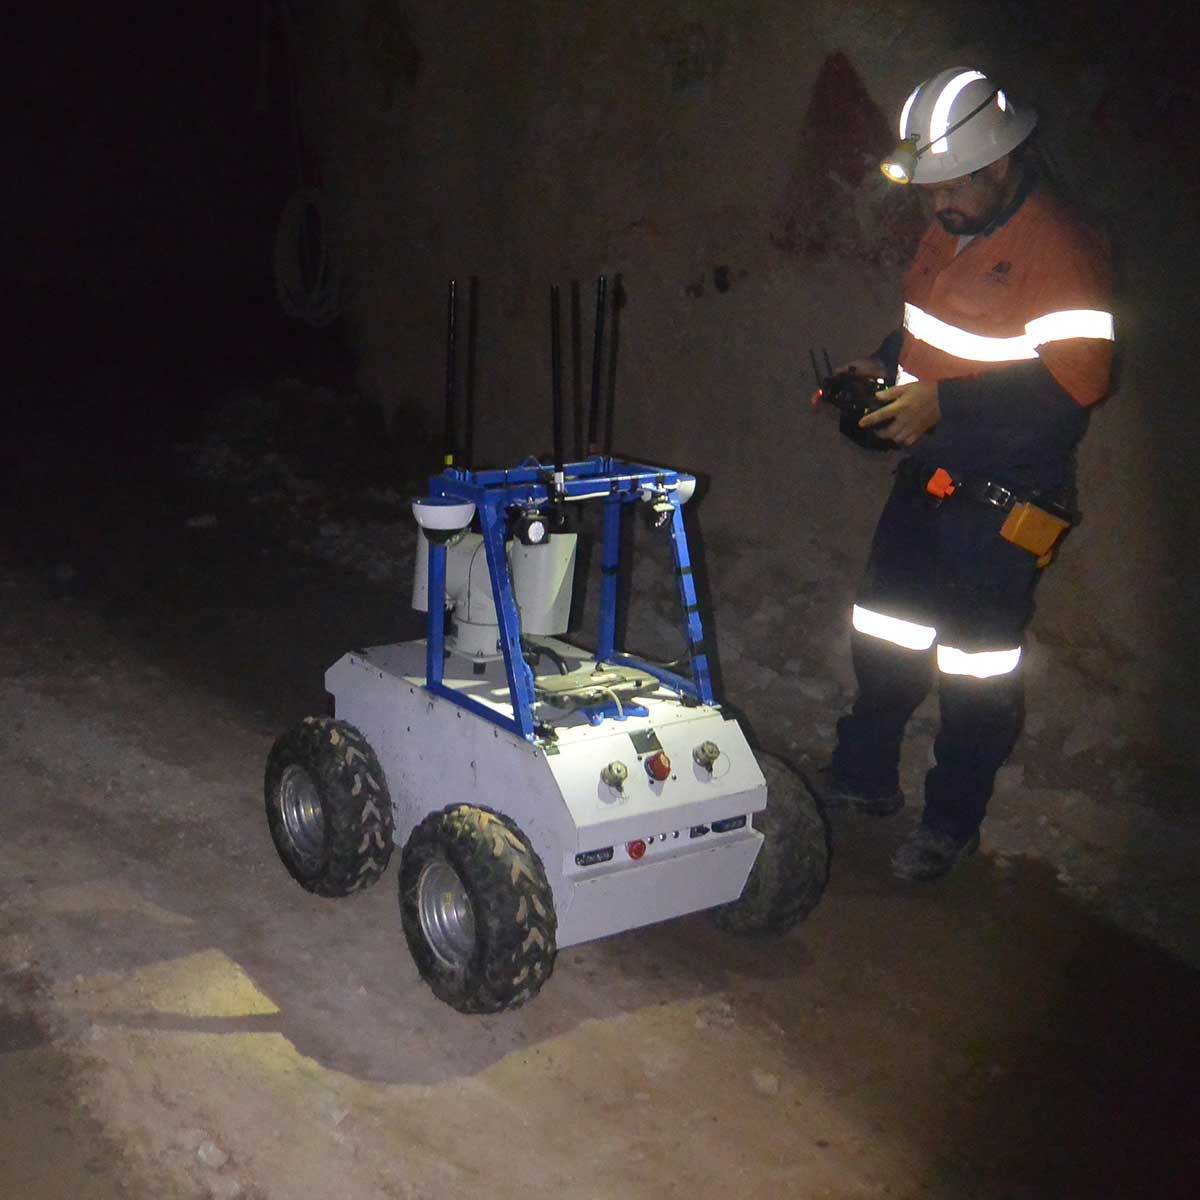 Safety in the work place, Uncrashable drone, ground penetrating radar, underground scanning services, underground scanning equipment, satellite underground scanning, underground imaging equipment, drones for mining exploration, 3d modeling 3d scanning 3d mapping projector, projection mapping software, 3d mapping drone, 3d mapping online, 3d mapping app